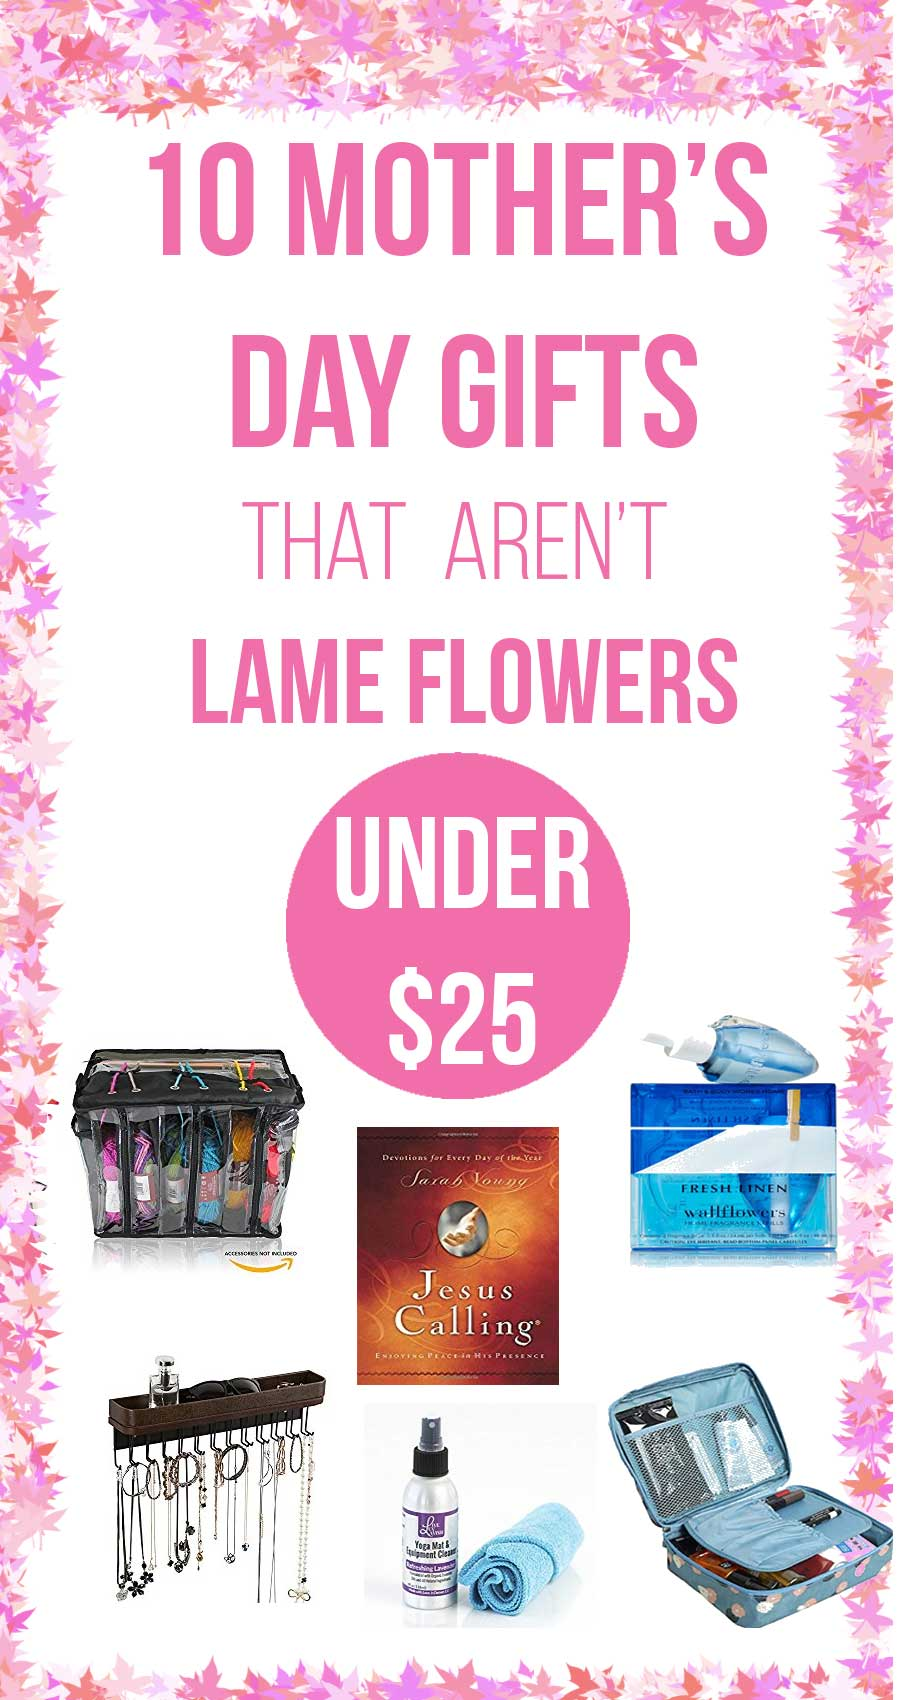 Doesn't your mom deserve more than flowers for Mother's Day? Not sure if you know what to get her? I've compiled 10 gifts that your Mom would appreciate--all under $25. There's a gift for the fitness mom, the organized mom, the spiritual mom, even the crafty mom! Shower your mom with gifts she will actually enjoy by clicking here!